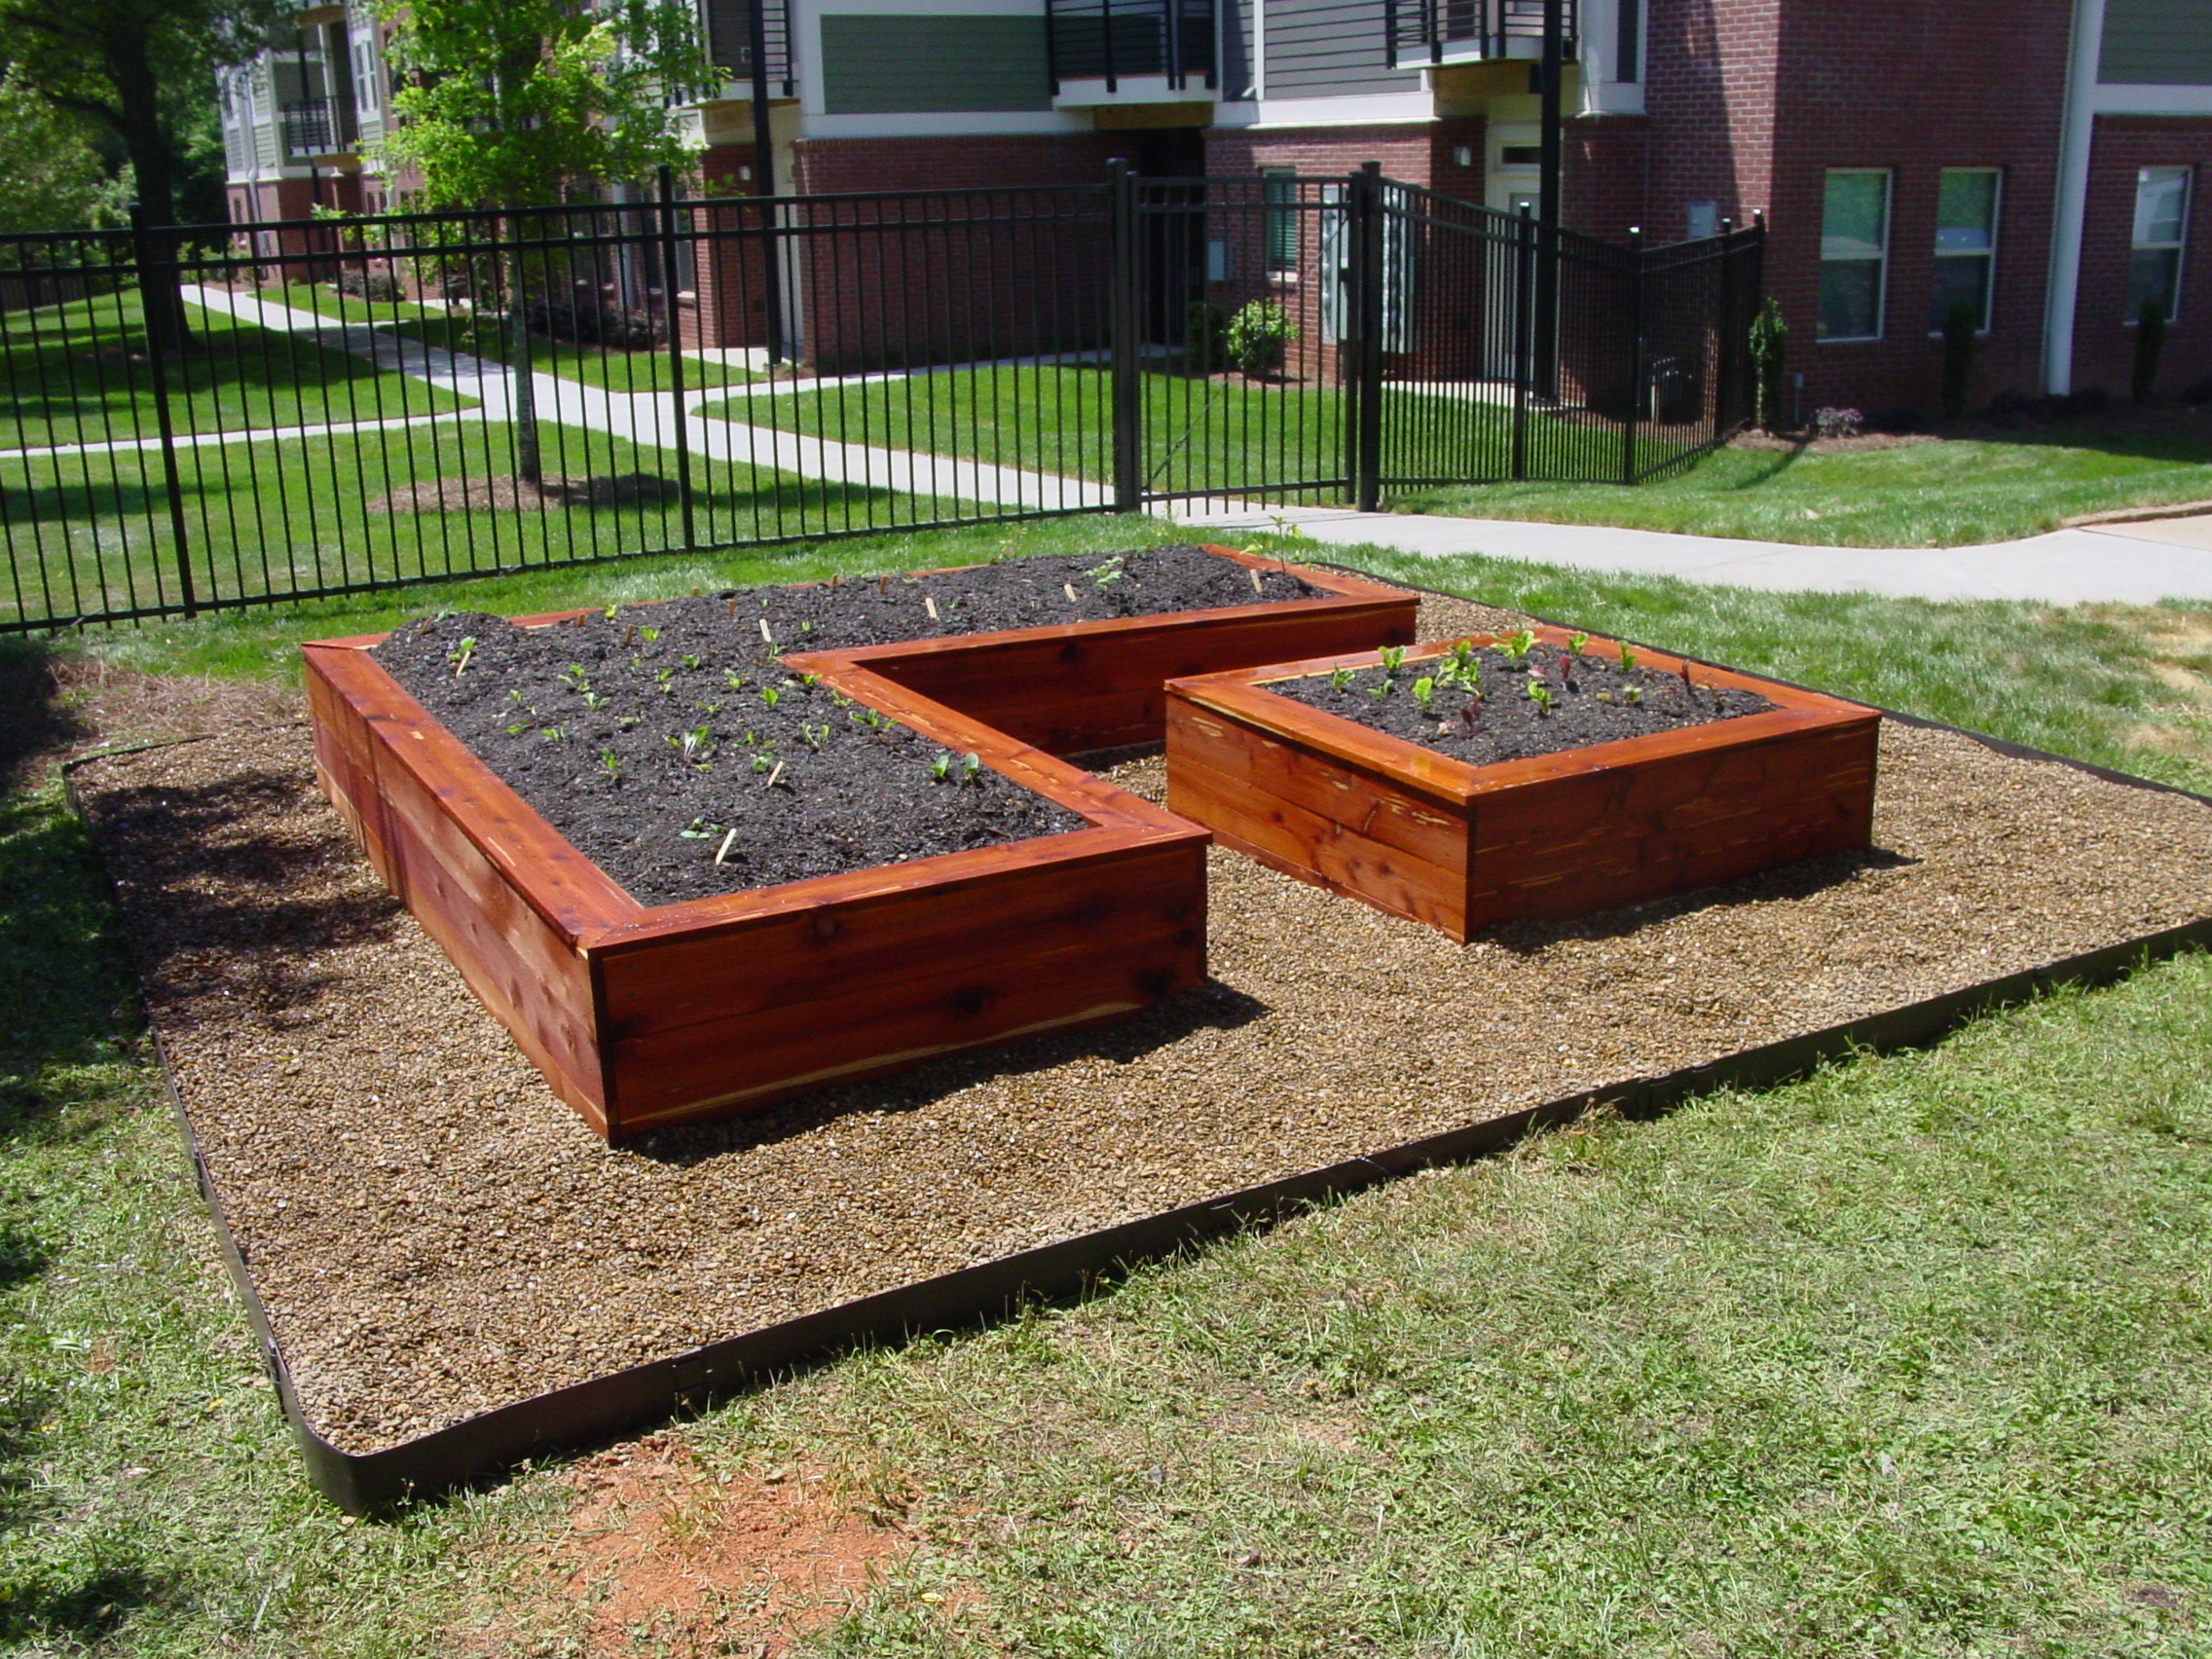 Garden bed designs 5 raised garden beds you can build in for Raised vegetable garden bed designs